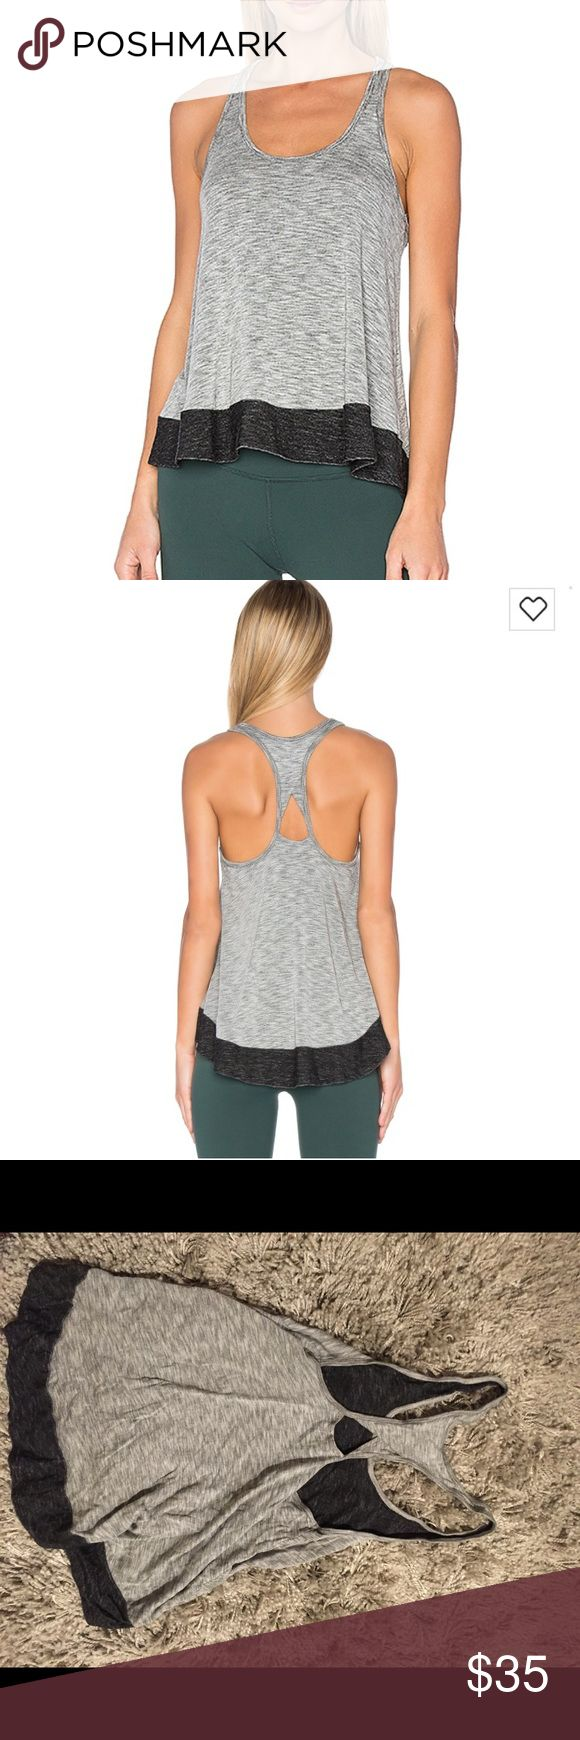 Beyond Yoga soft tank top Beyond Yoga new with tags! Gray with peep hole in the back Beyond Yoga Tops Tank Tops